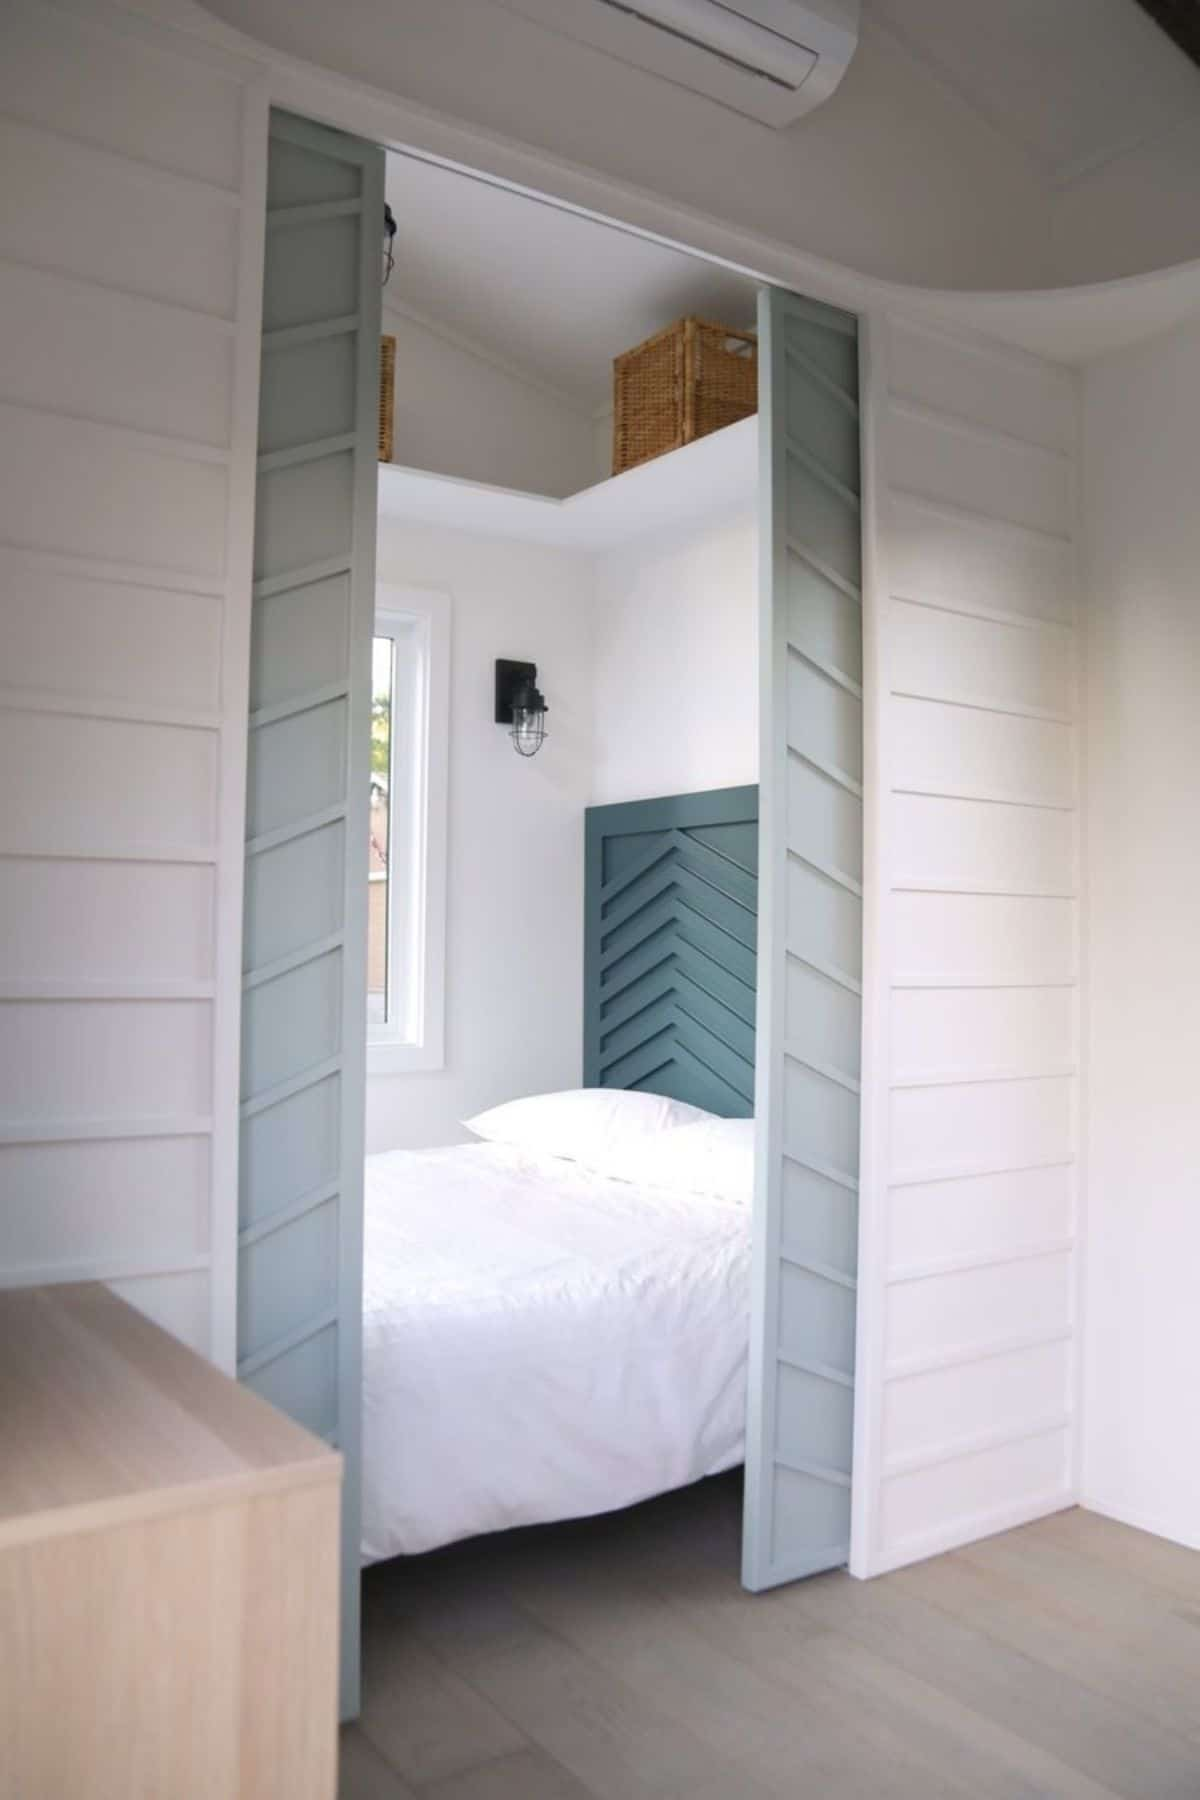 Open blue doors looking into tiny bedroom with blue headboard and white bed